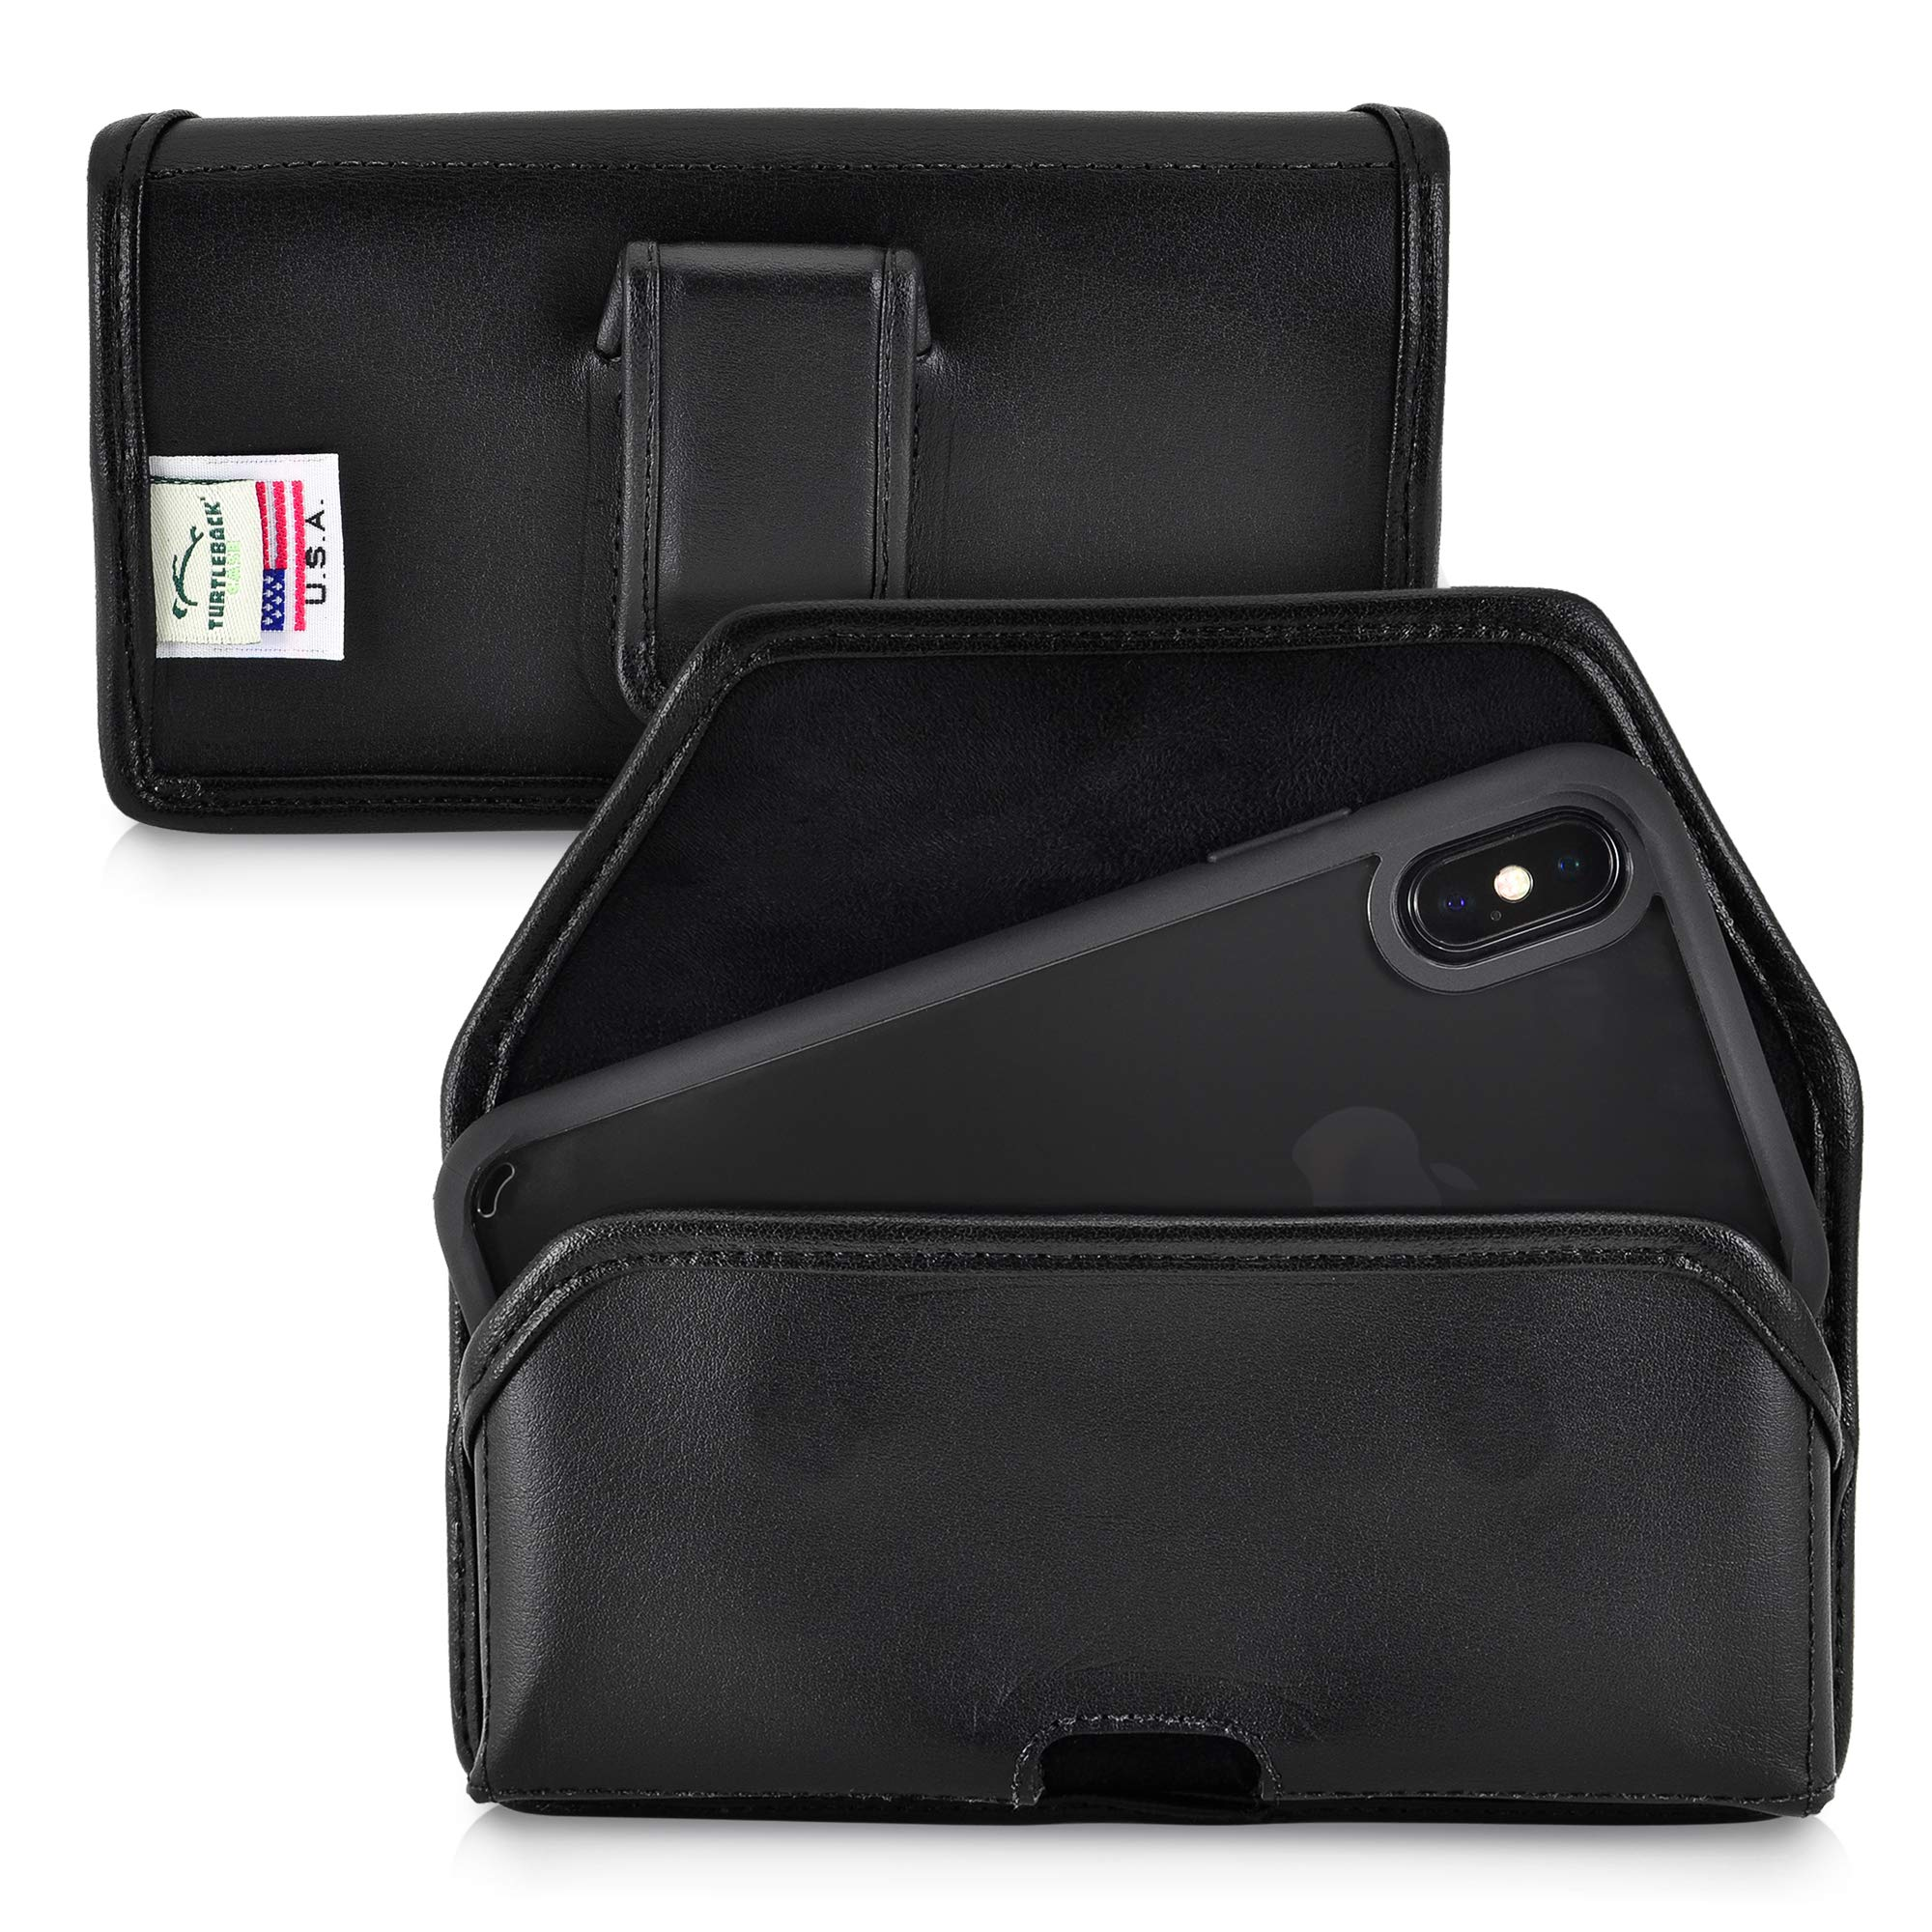 Turtleback Holster Designed for iPhone 11 Pro (2019) iPhone Xs (2018) and iPhone X (2017) Belt Case Black Leather Pouch with Executive Belt Clip, Horizontal Made in USA